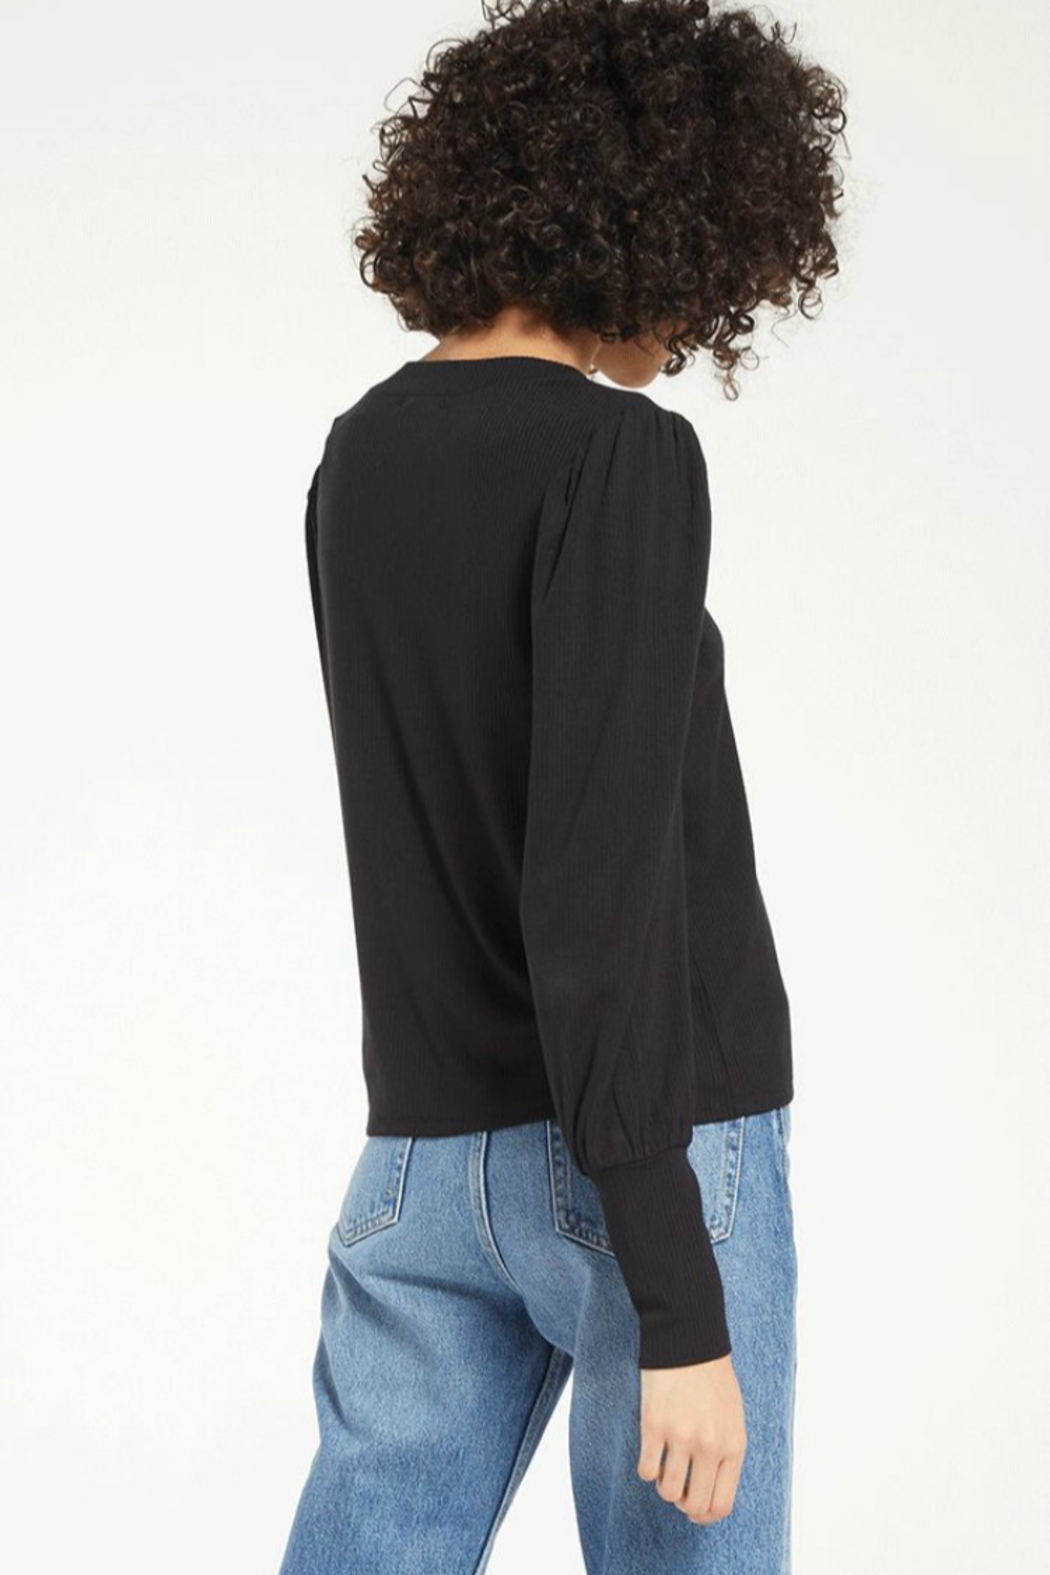 z supply Clemente Puff Sleeve - Side Cropped Image